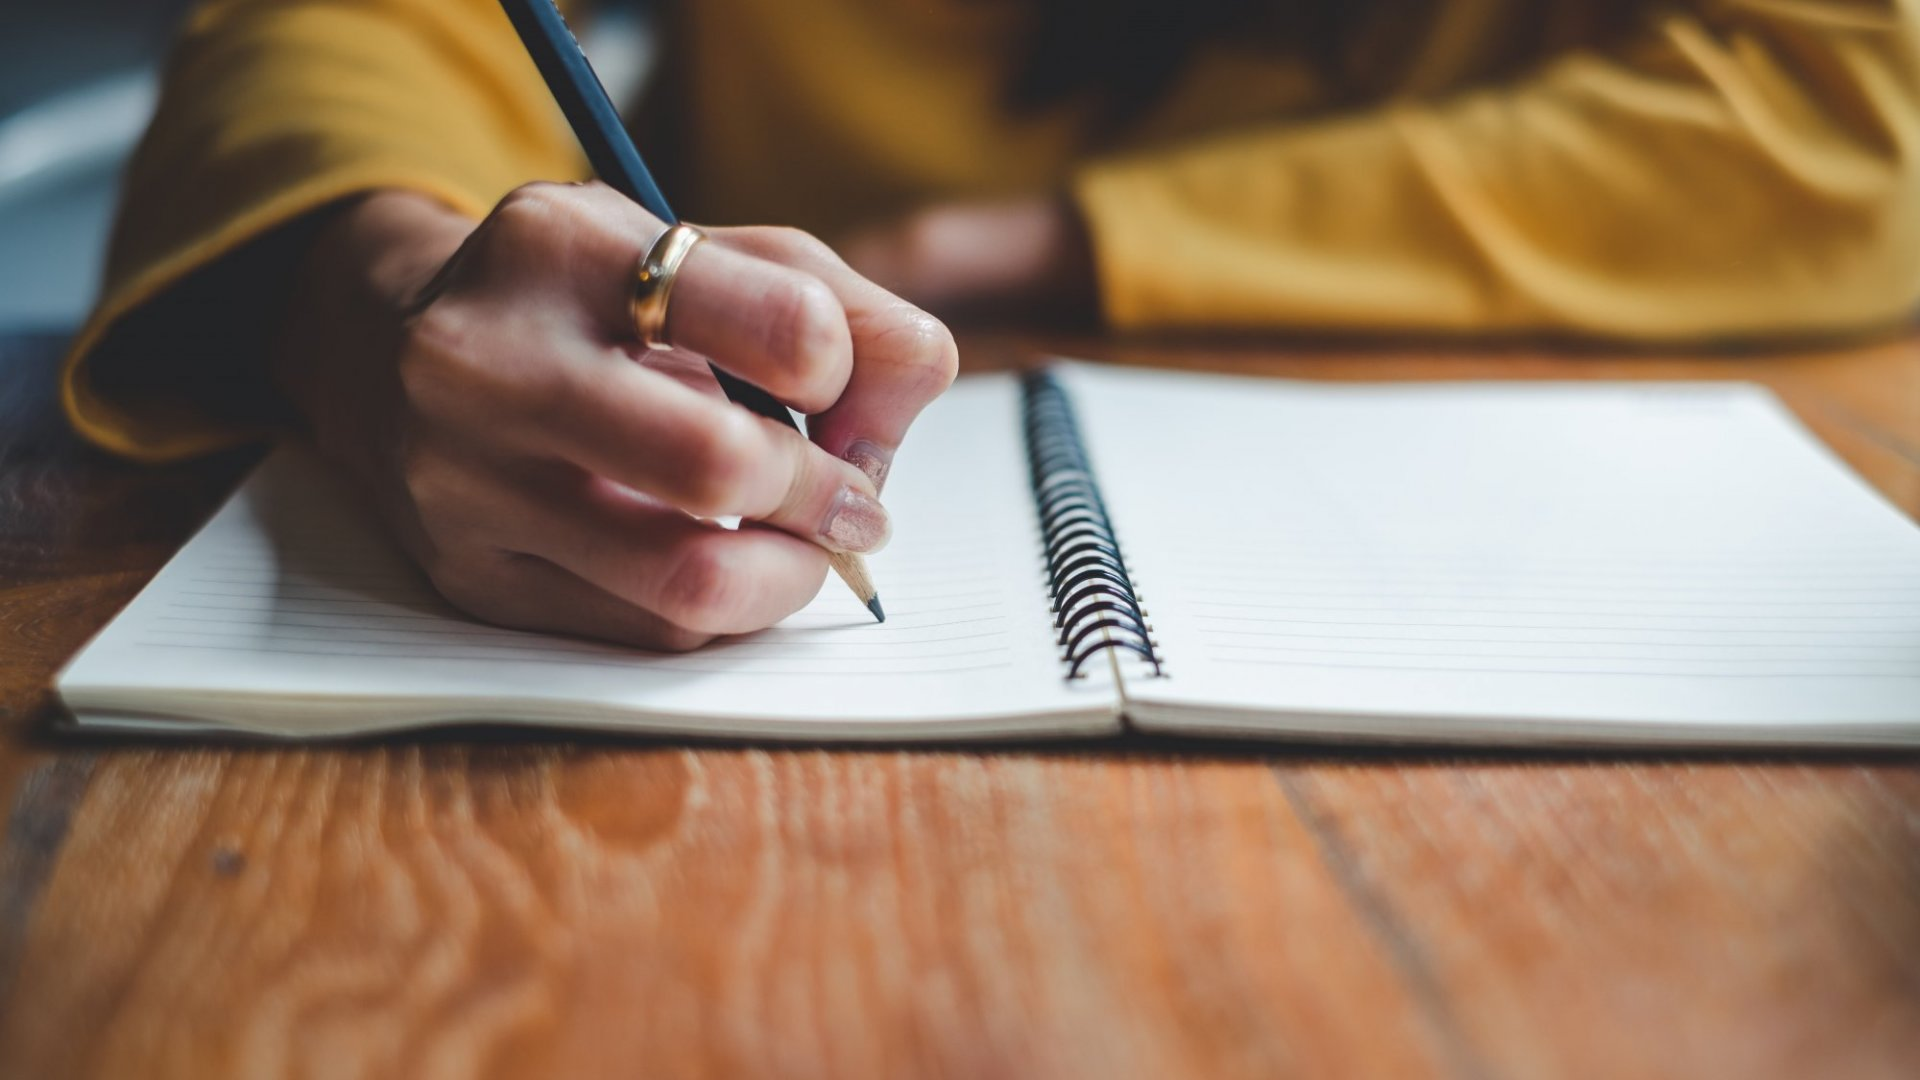 How to Stop Procrastinating and Start Writing